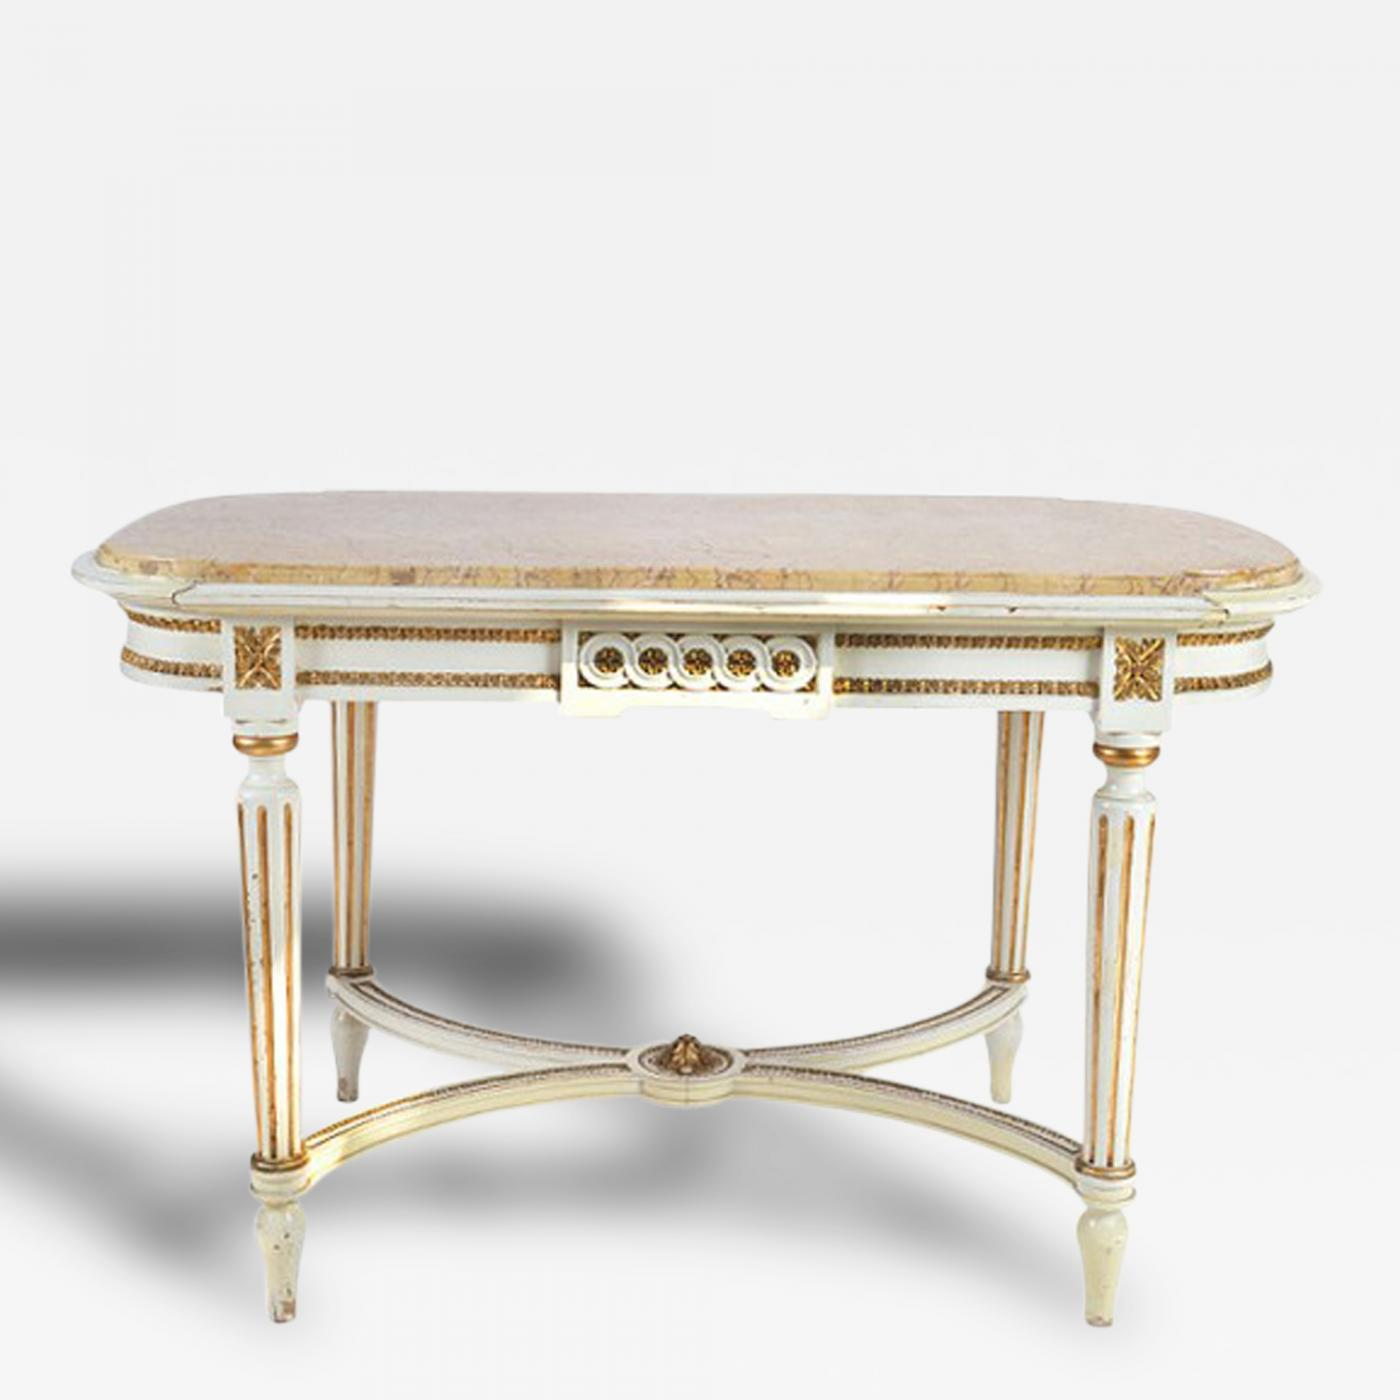 Marble Coffee Table Houston: Gustavian Period Tea-Coffee Marble Top Table, 19th Century